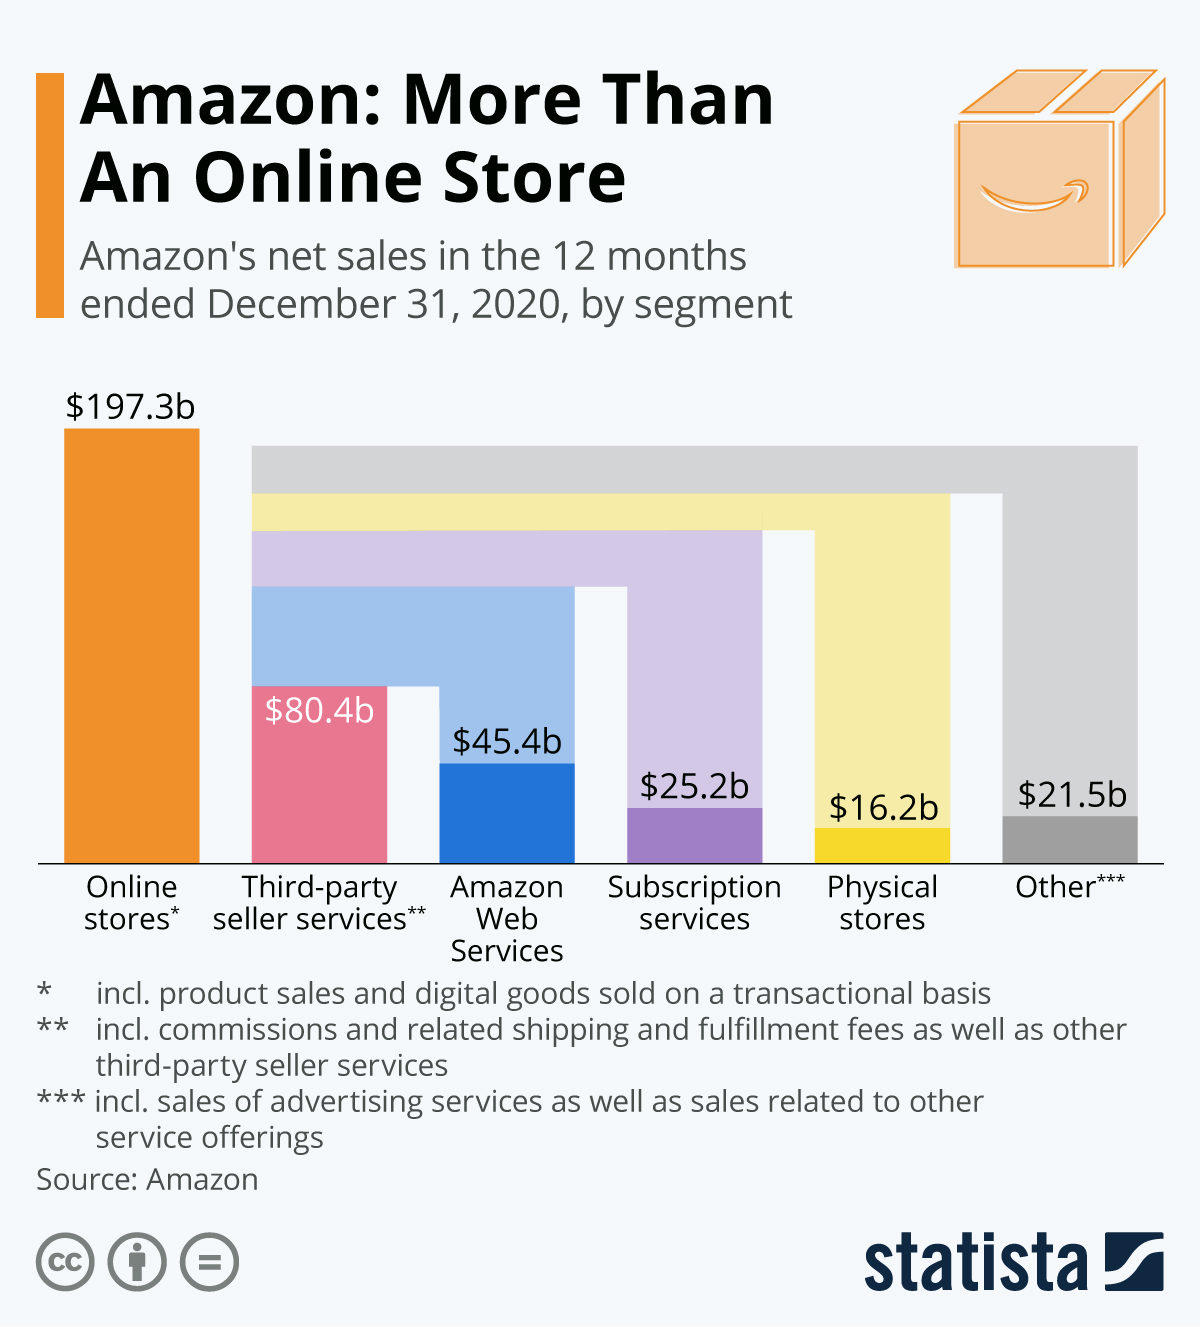 Amazon is much more than an online store